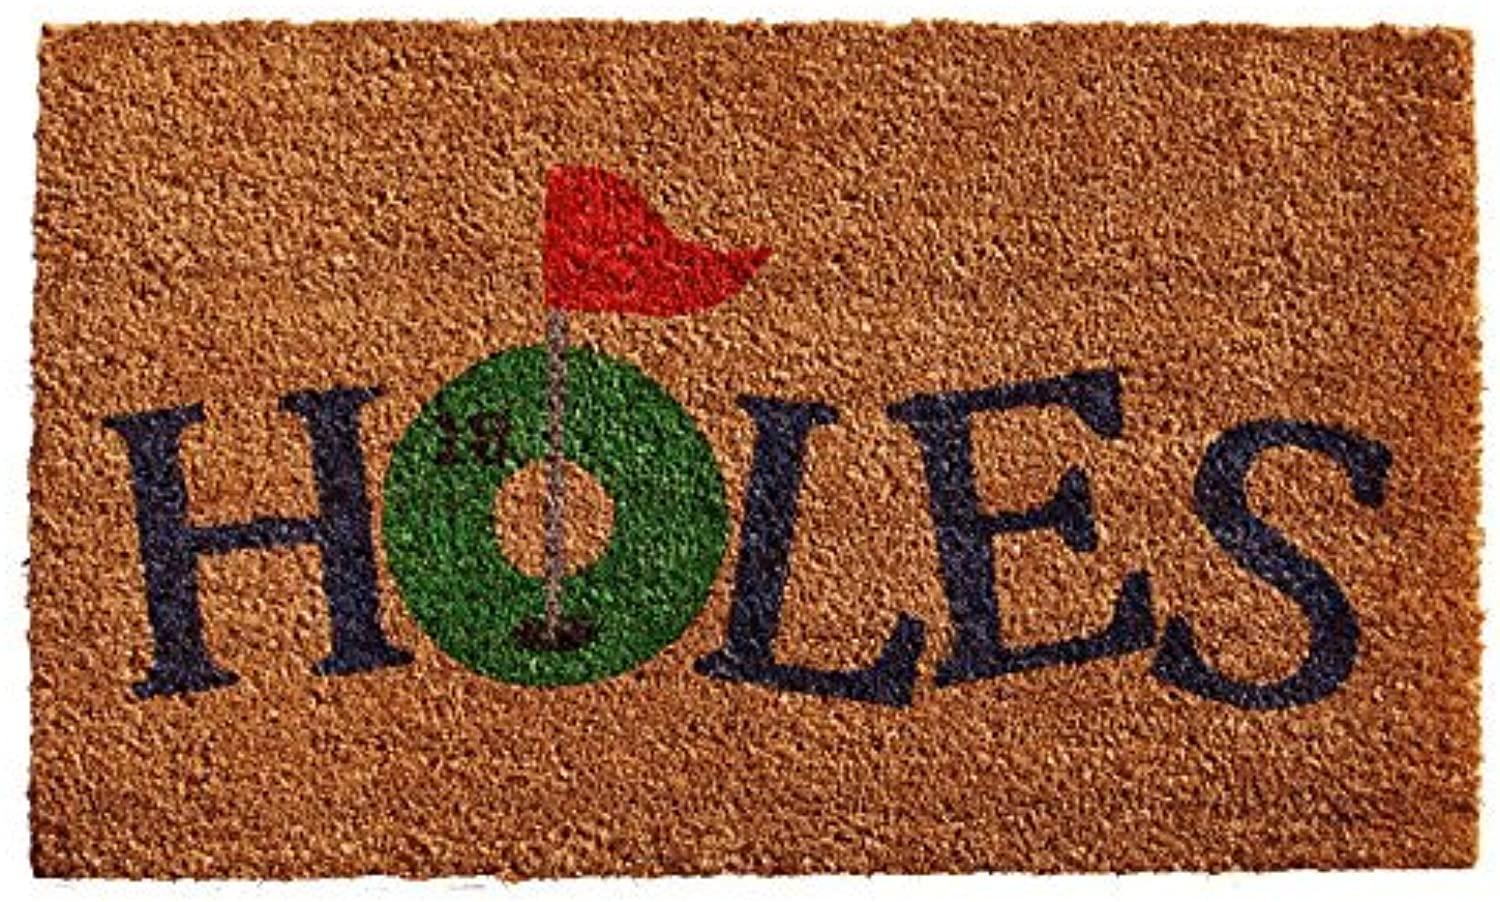 Home & More 121592436 18 Holes Doormat, 24 by 36-Inch